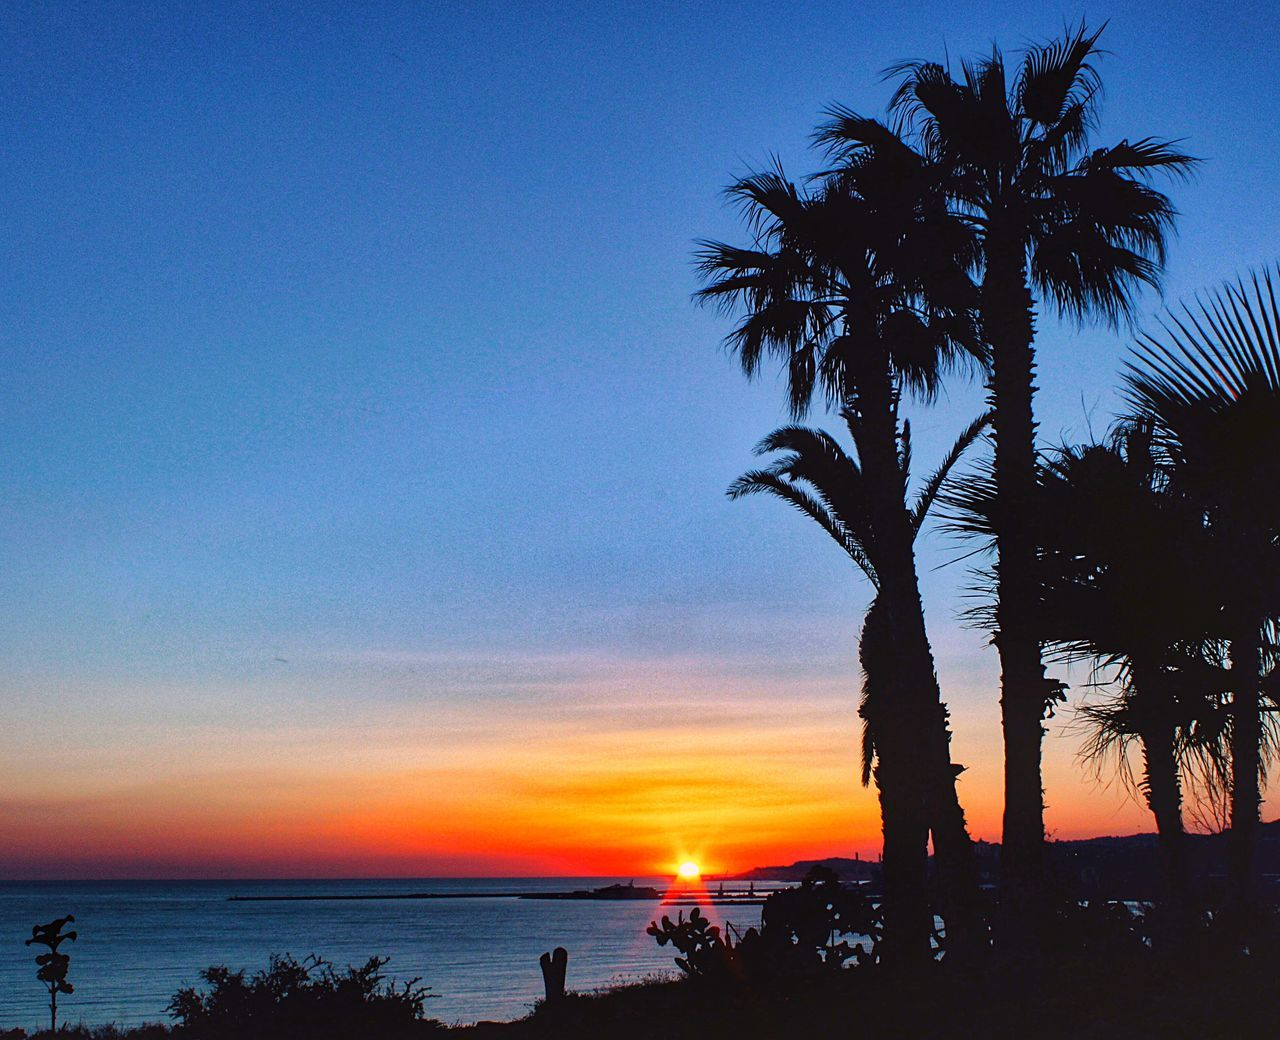 Tramonti siciliani Sicily Sicilia Agrigento SunsetSunset Palm Tree Beach Silhouette Sea Beauty In Nature Scenics Tree Water Sky Horizon Over Water Nature Tranquil Scene Blue Tranquility Outdoors Vacations No People Day Puesta De Sol